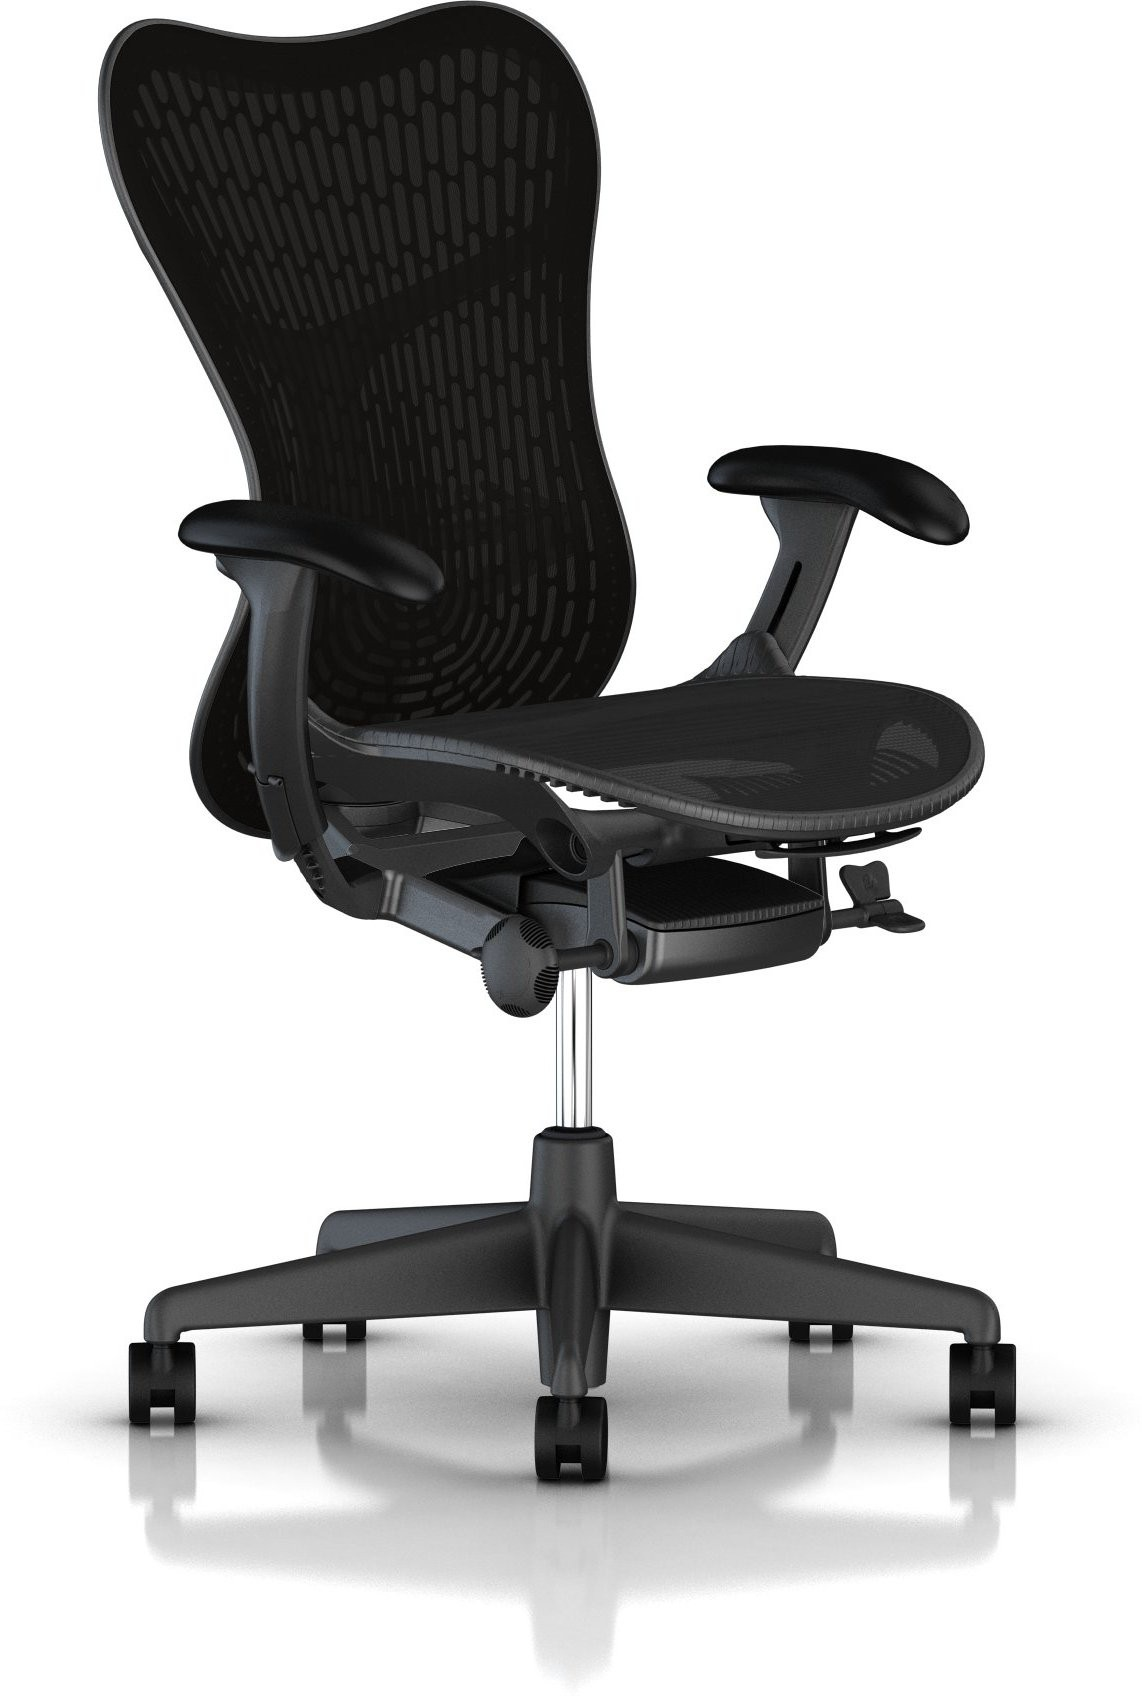 View HermanMiller Mirra 2 - Black Butterfly suspension back : Graphite Seat : Triflex Polymer Synthetic Fiber Office Chair(Black) Furniture (HermanMiller)